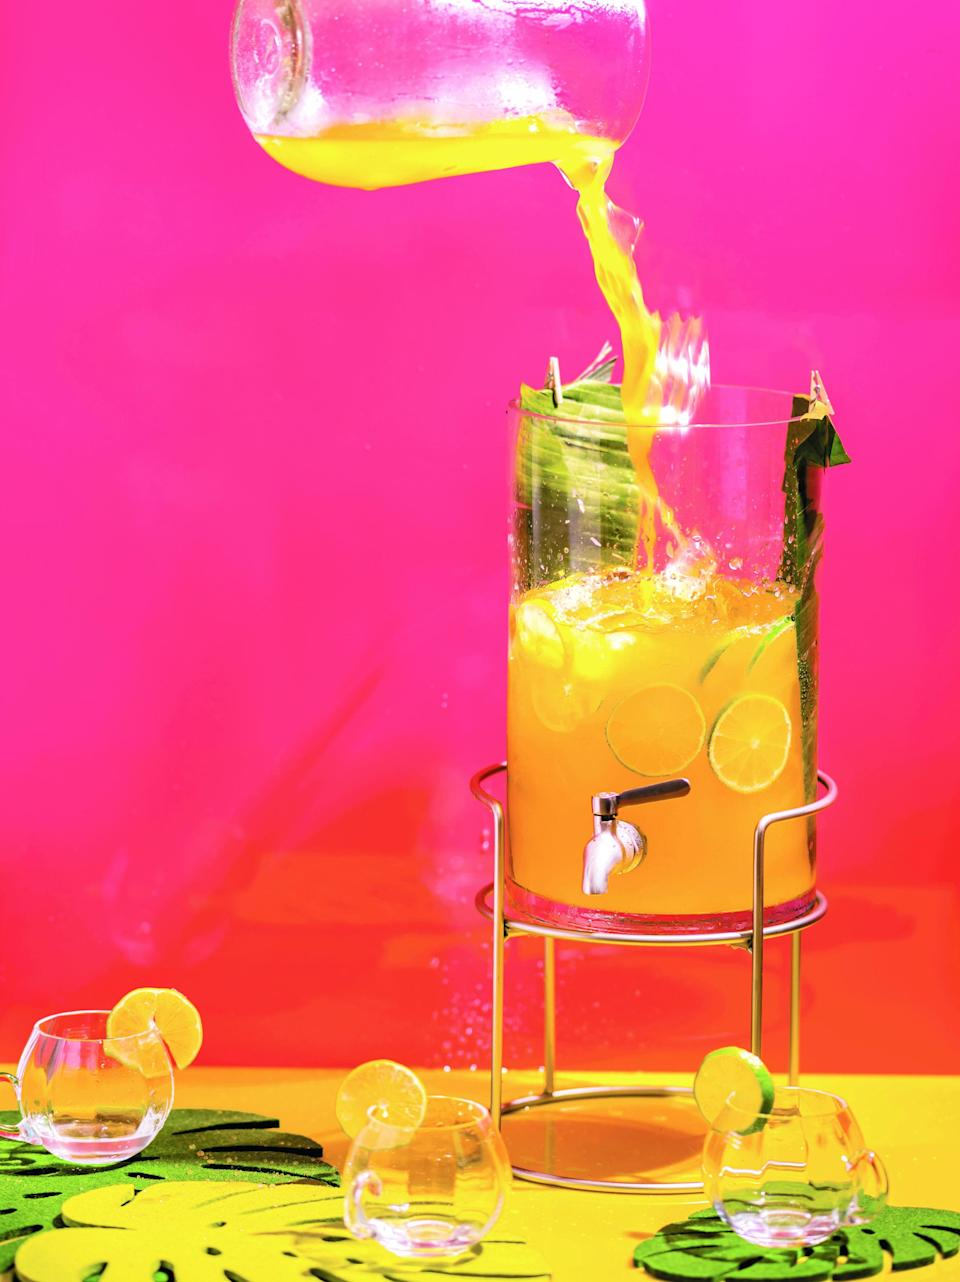 """This easy rum punch from bartender Shannon Mustipher's book <a href=""""https://www.epicurious.com/cookbooks/tiki-modern-tropical-cocktails-shannon-mustipher?mbid=synd_yahoo_rss"""" rel=""""nofollow noopener"""" target=""""_blank"""" data-ylk=""""slk:Tiki: Modern Tropical Cocktails"""" class=""""link rapid-noclick-resp""""><em>Tiki: Modern Tropical Cocktails</em></a> gets its layers of flavor from pot still rum, Earl Grey tea (which has hints of bergamot), plus fresh grapefruit and a quick pineapple syrup. <a href=""""https://www.epicurious.com/recipes/food/views/royal-dock-cooler-rum-punch?mbid=synd_yahoo_rss"""" rel=""""nofollow noopener"""" target=""""_blank"""" data-ylk=""""slk:See recipe."""" class=""""link rapid-noclick-resp"""">See recipe.</a>"""